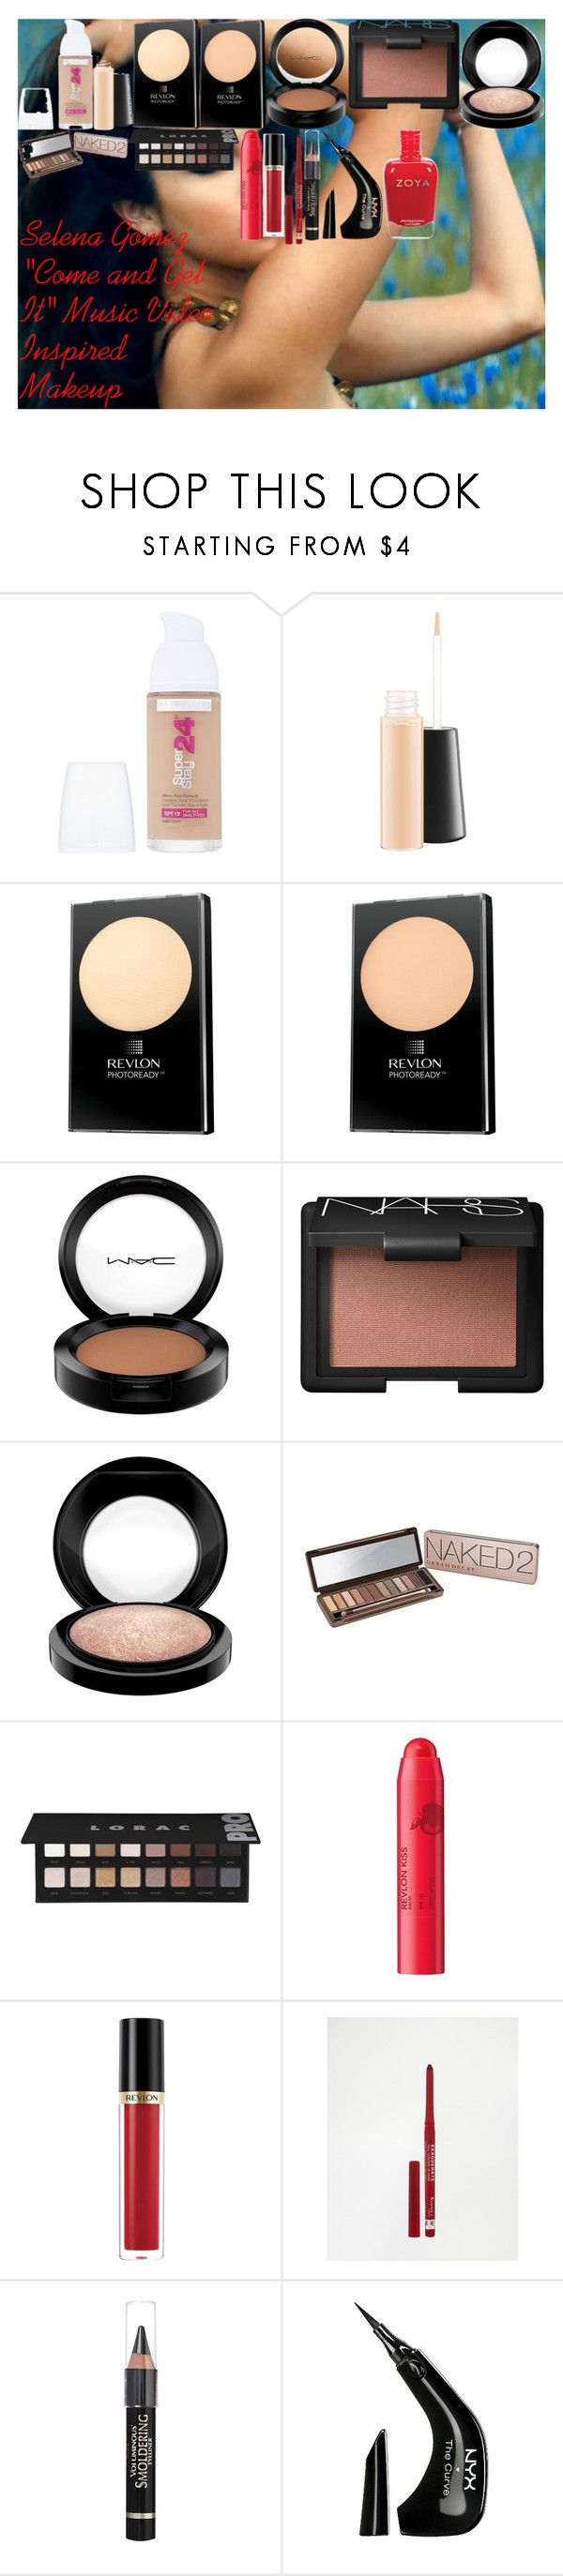 """""""Selena Gomez """"Come and Get It"""" Music Video Inspired Makeup"""" by oroartye-1 on Polyvore featuring beauty, Maybelline, MAC Cosmetics, Revlon, NARS Cosmetics, Urban Decay, LORAC, Rimmel, Anrealage and NYX"""